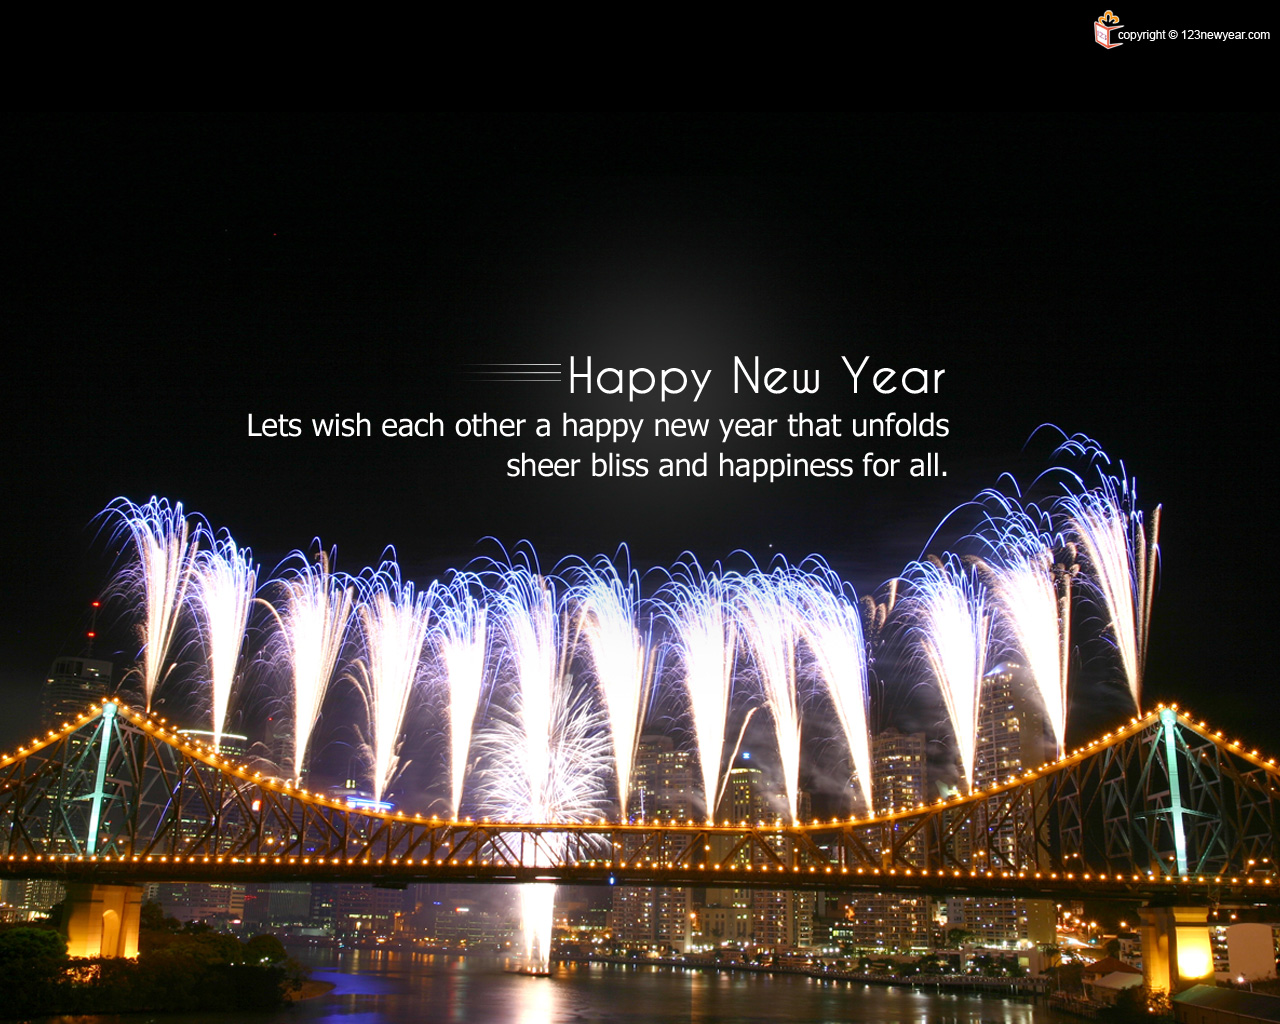 a scintillating wallpaper to send happy new year wishes for 2015 to your family and friends recently searched best new year greetings